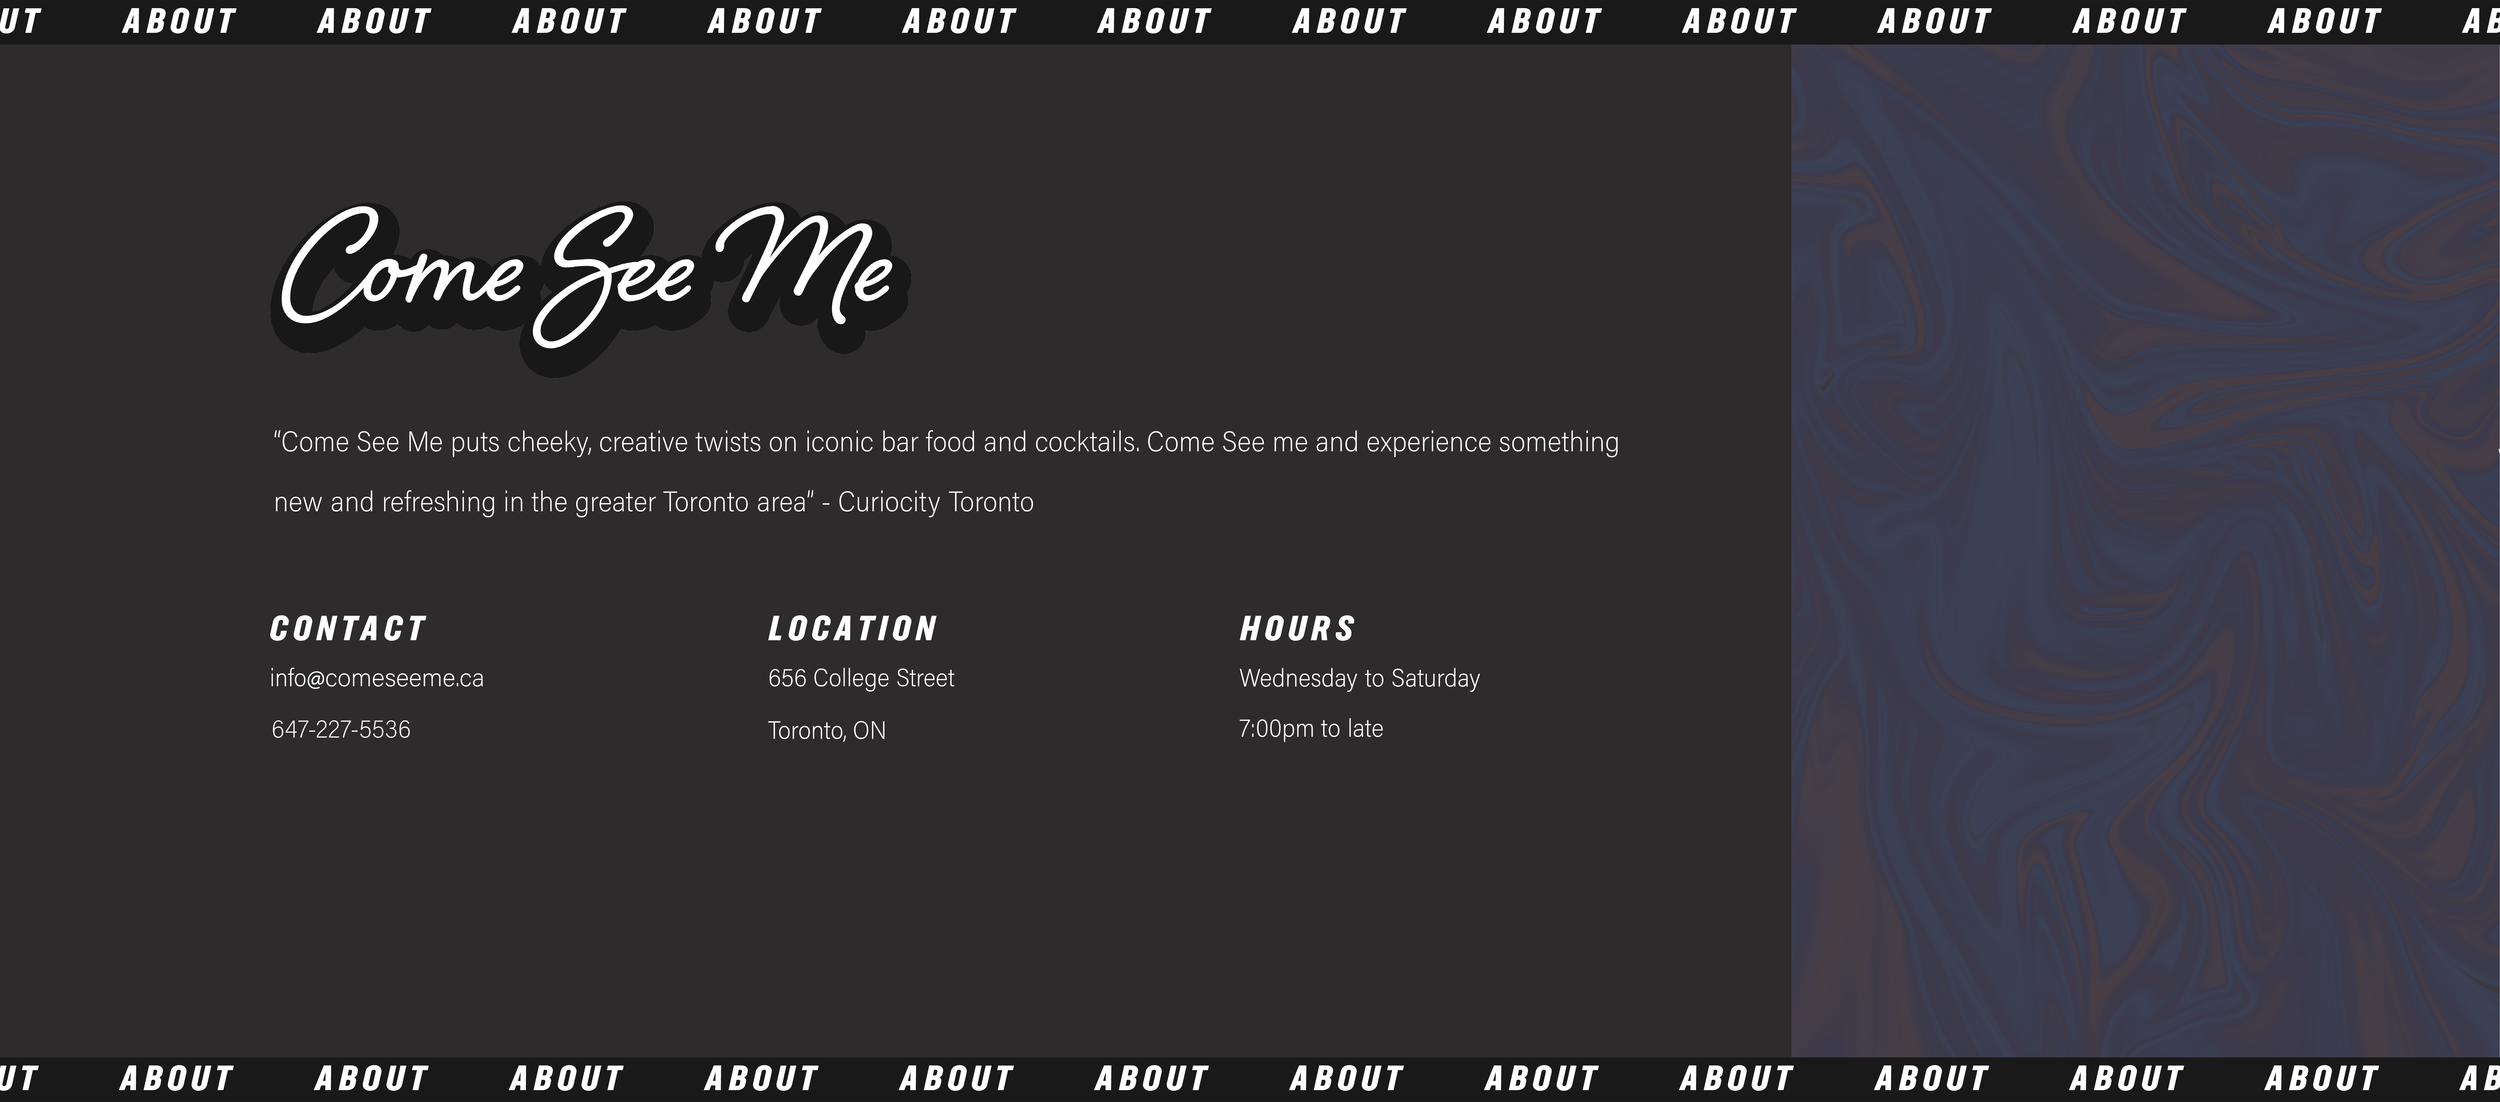 ComeSeeMe-web-about-01.png